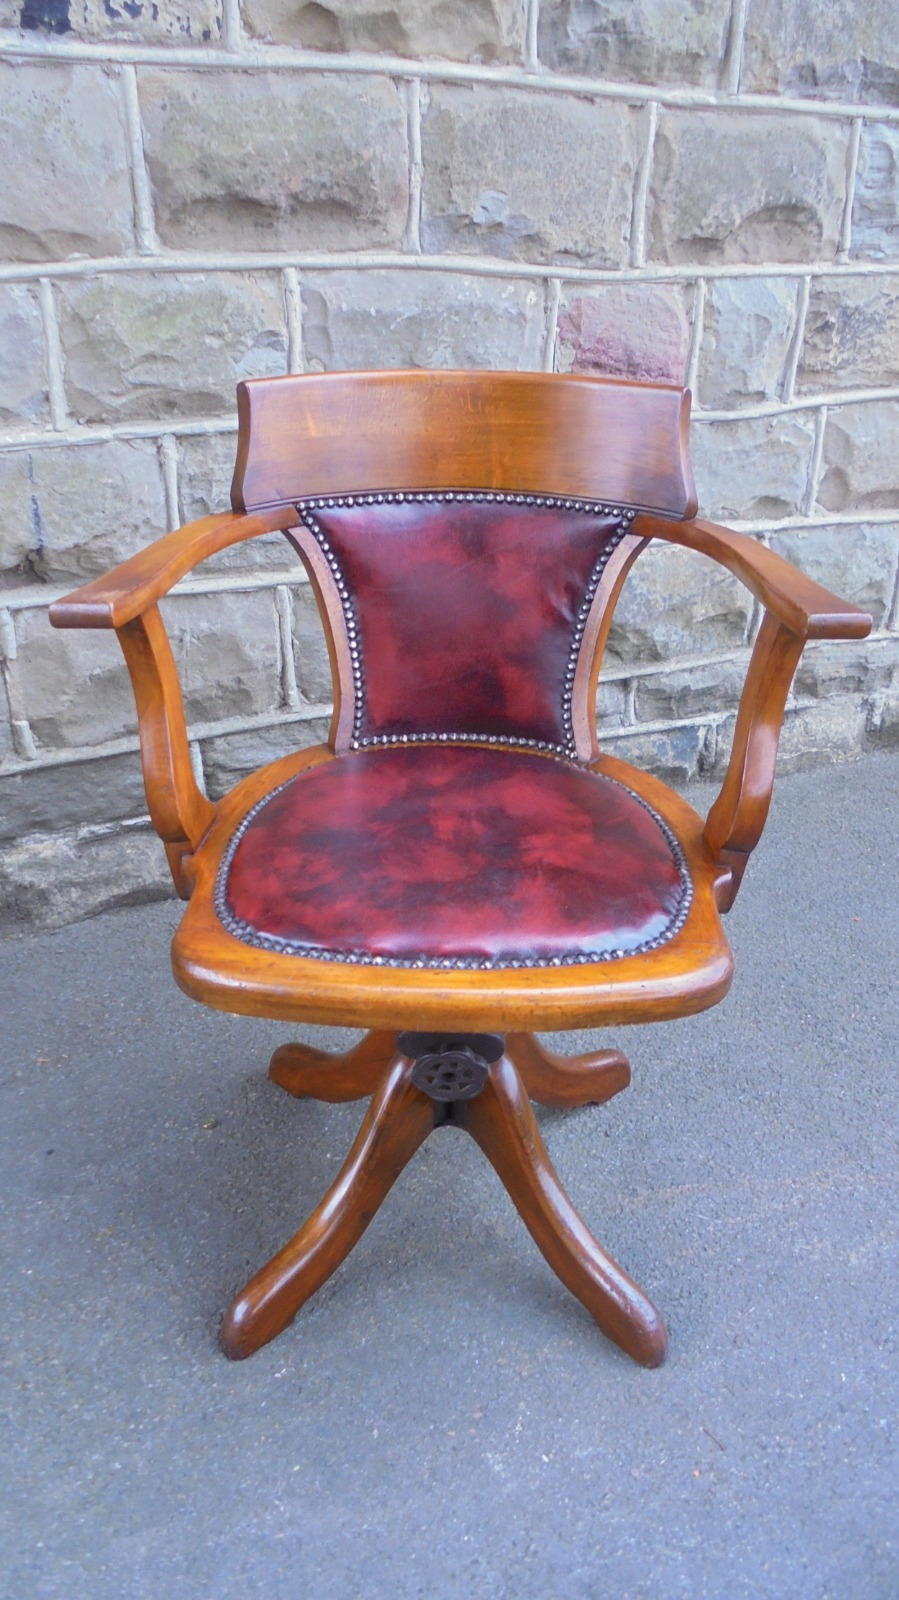 Antique Walnut Revolving Desk Chair Am La116988 Loveantiques Com